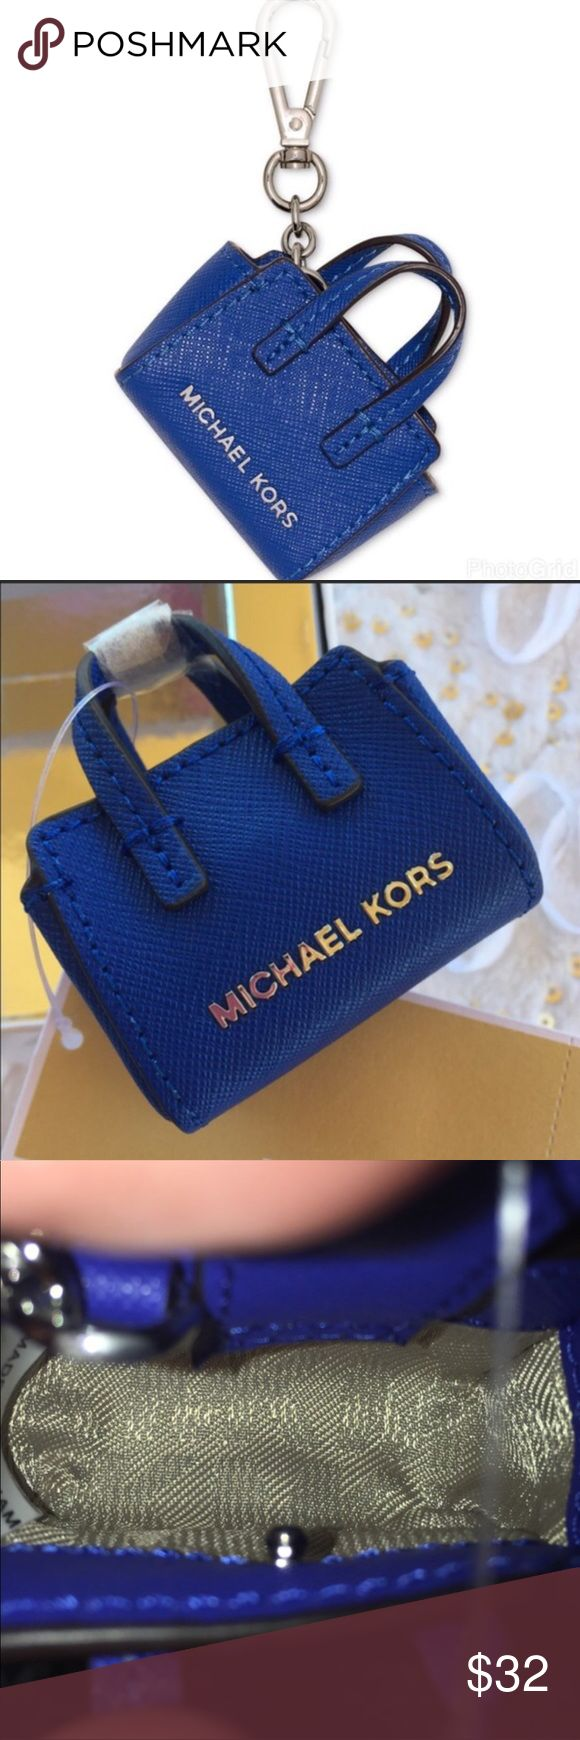 """Micheal Kors keychain 💯% Authentic Micheal Kors Keychain.                                                                2"""" high x 2.5"""" wide 18k gold-plated or silver hardware, Saffiano leather **Color is Electric Blue** Mini Selma handbag charm with 3/4"""" drop Carabiner clip closure Handbag charm: 2-1/2"""" W x 2"""" H x 1"""" D Imported Michael Kors Accessories Key & Card Holders"""